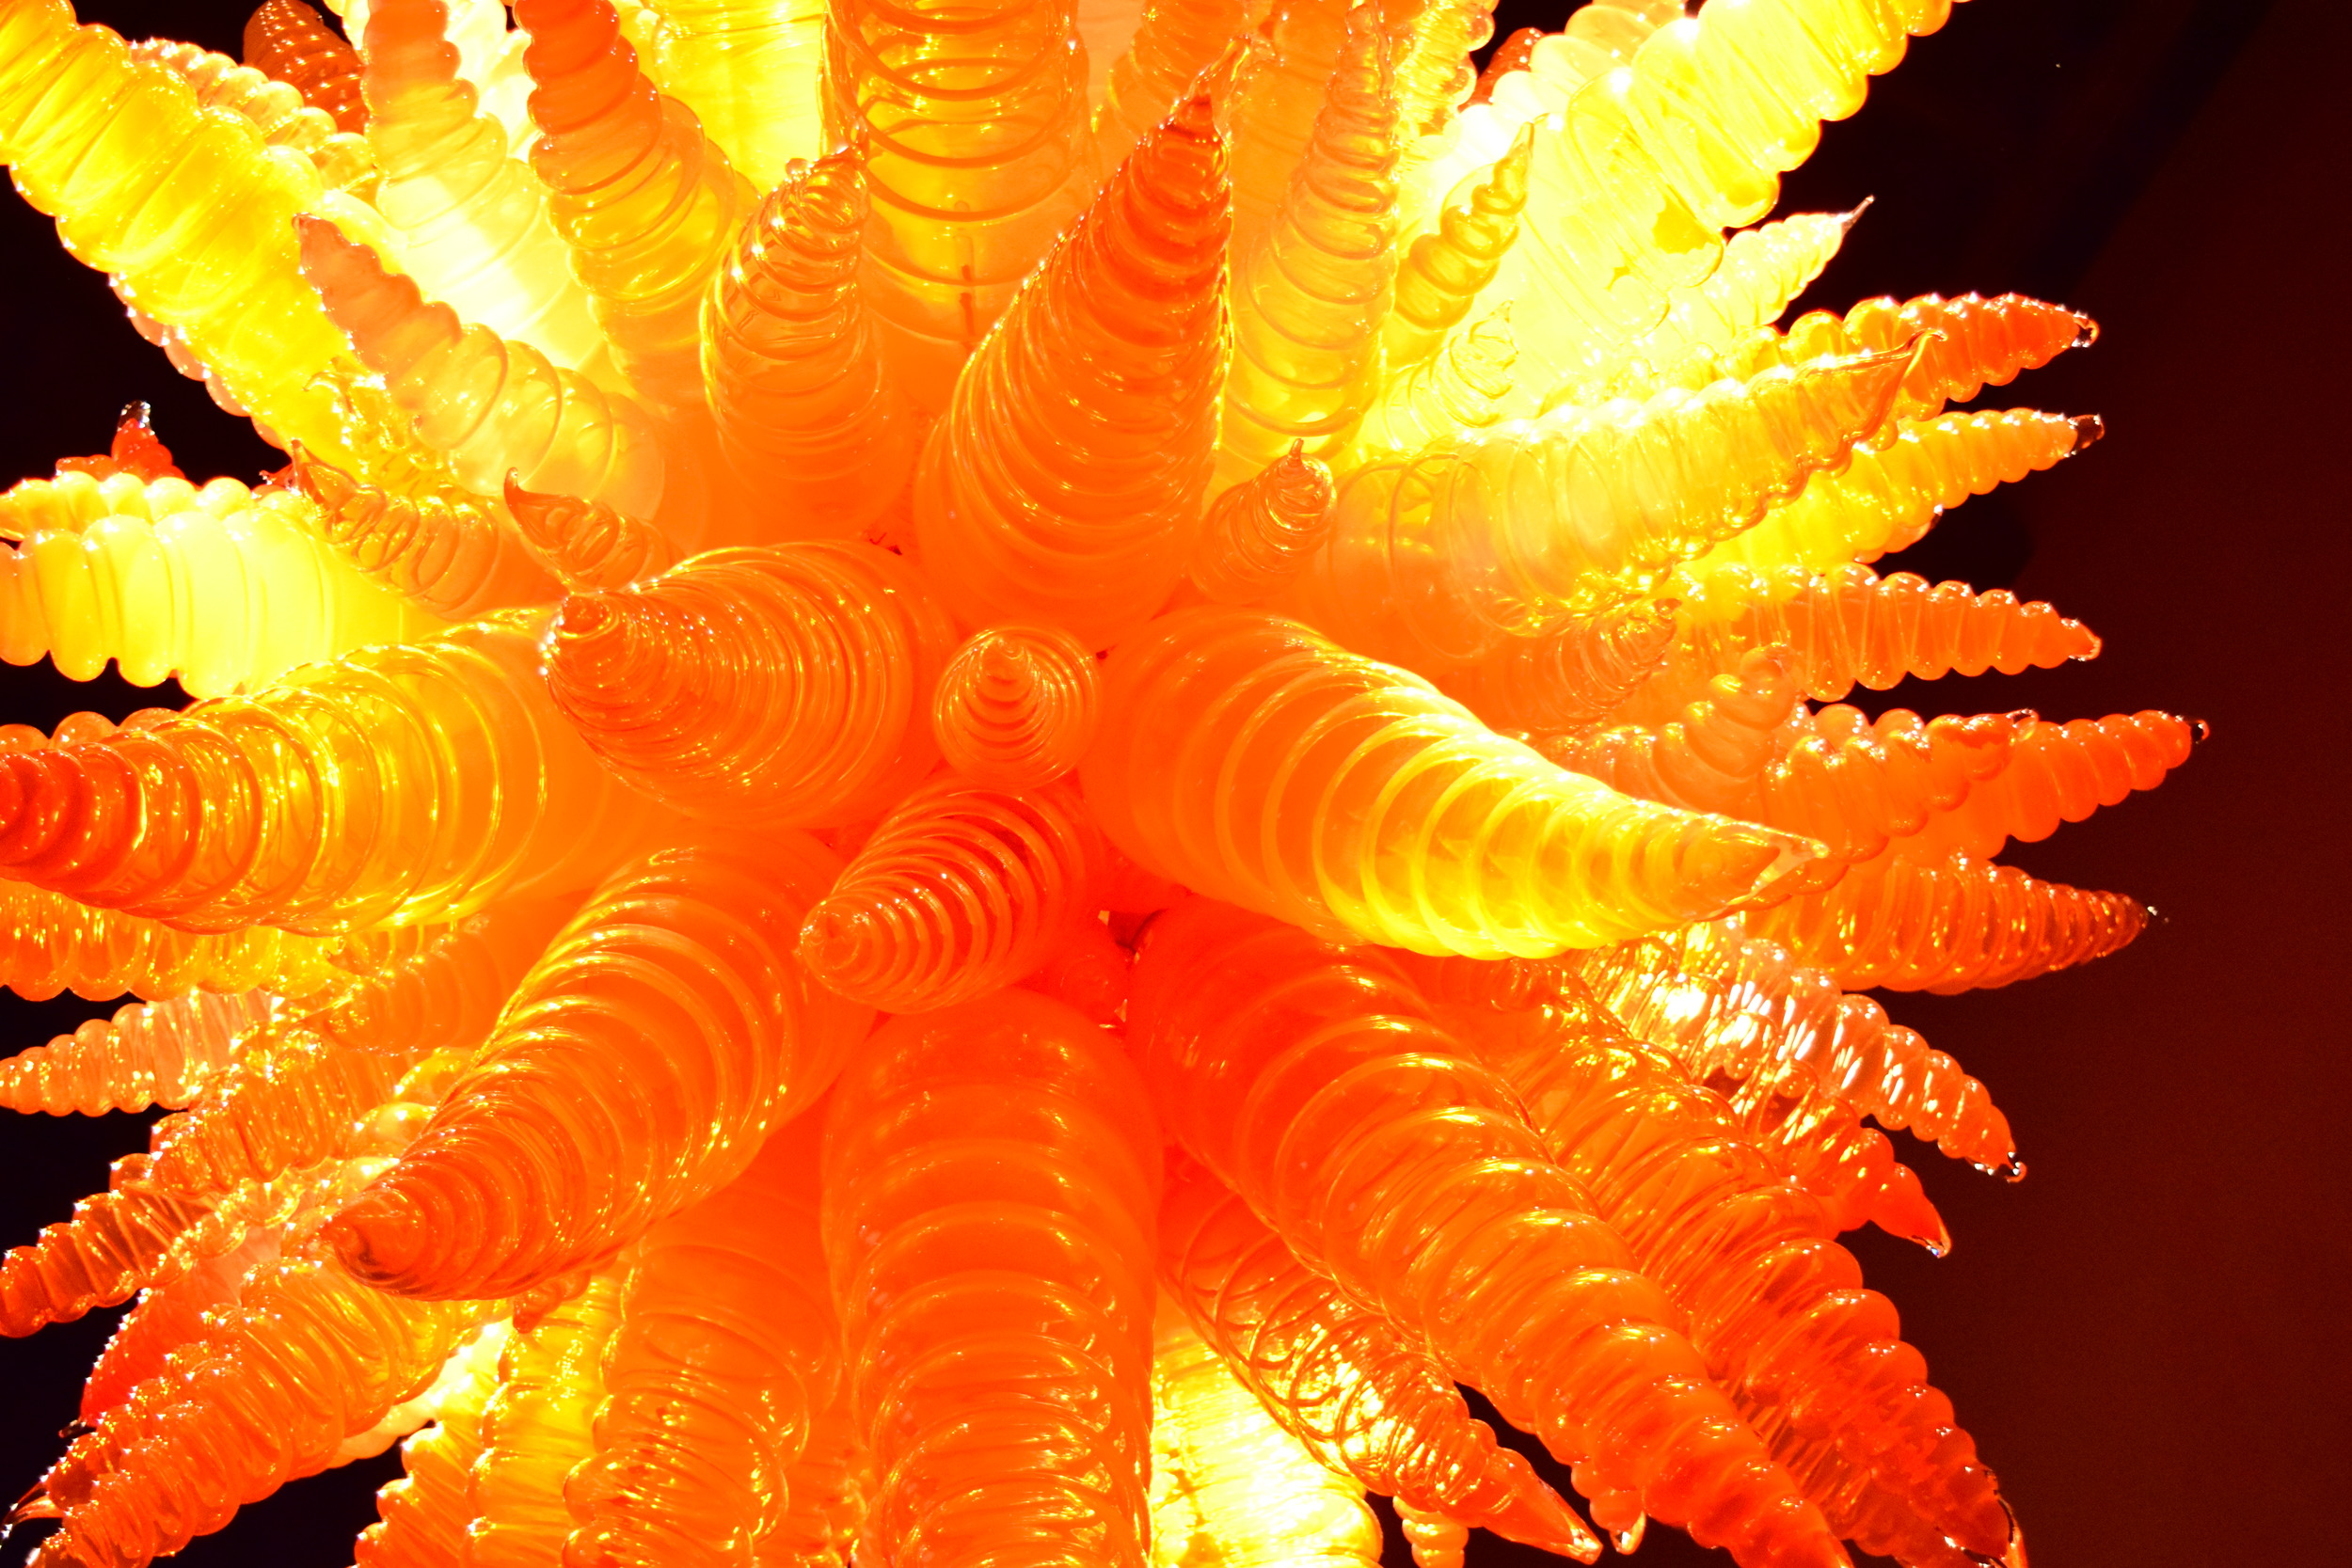 chihuly-glass-garden-orange-chandelier